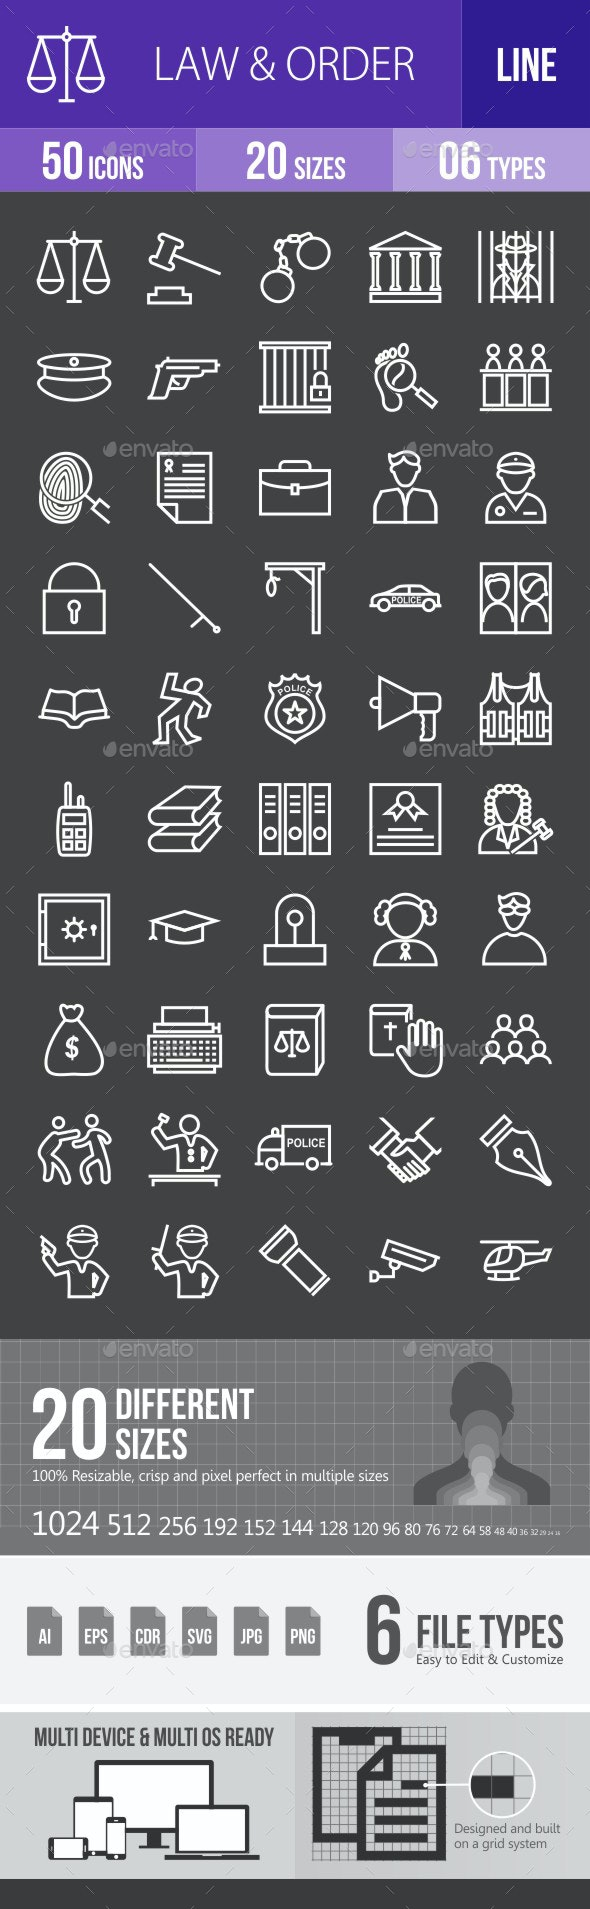 Law & Order Line Inverted Icons - Icons